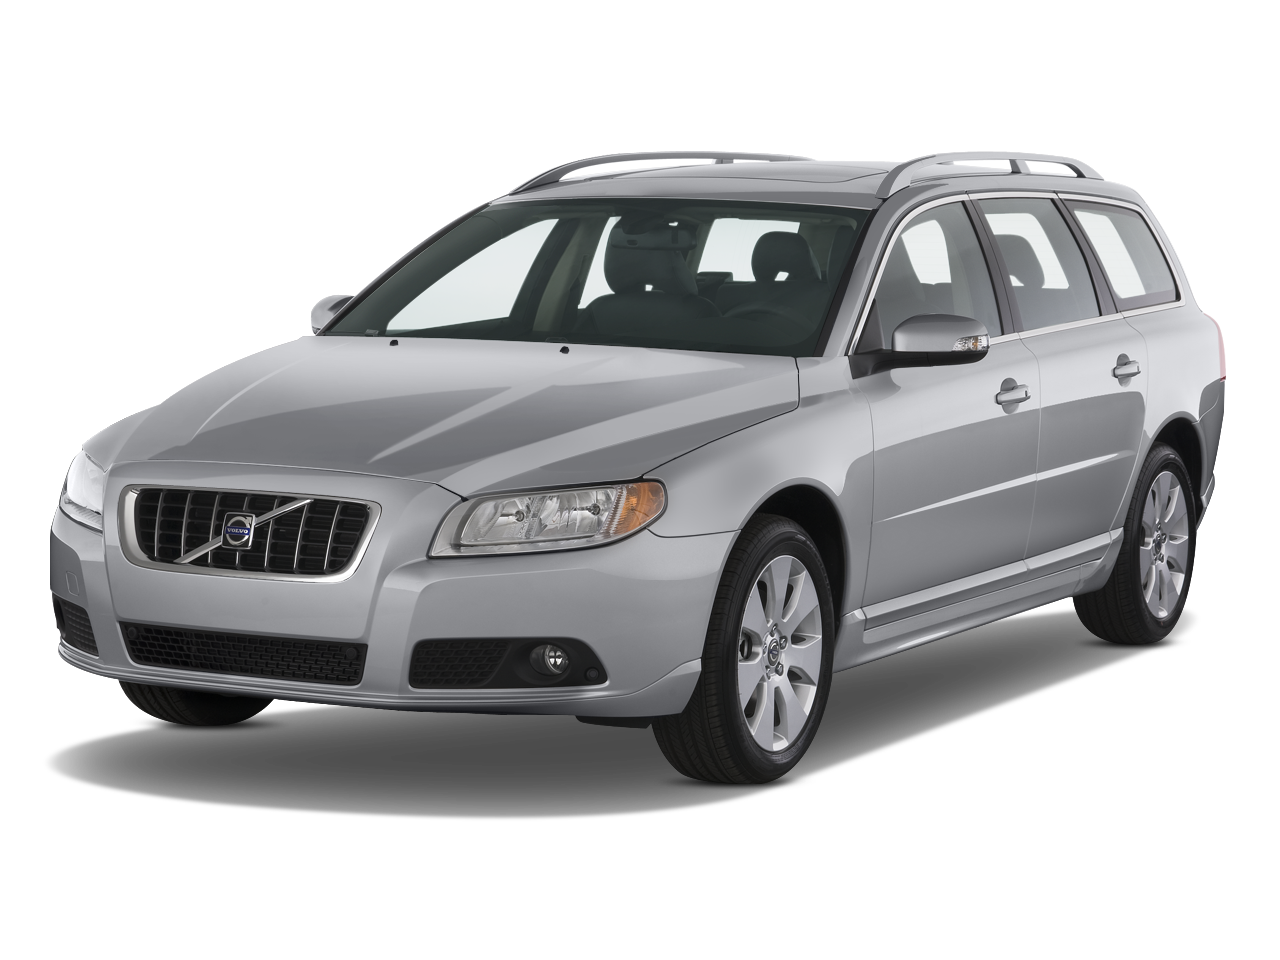 2008 volvo v70 wagon volvo midsize wagon review. Black Bedroom Furniture Sets. Home Design Ideas